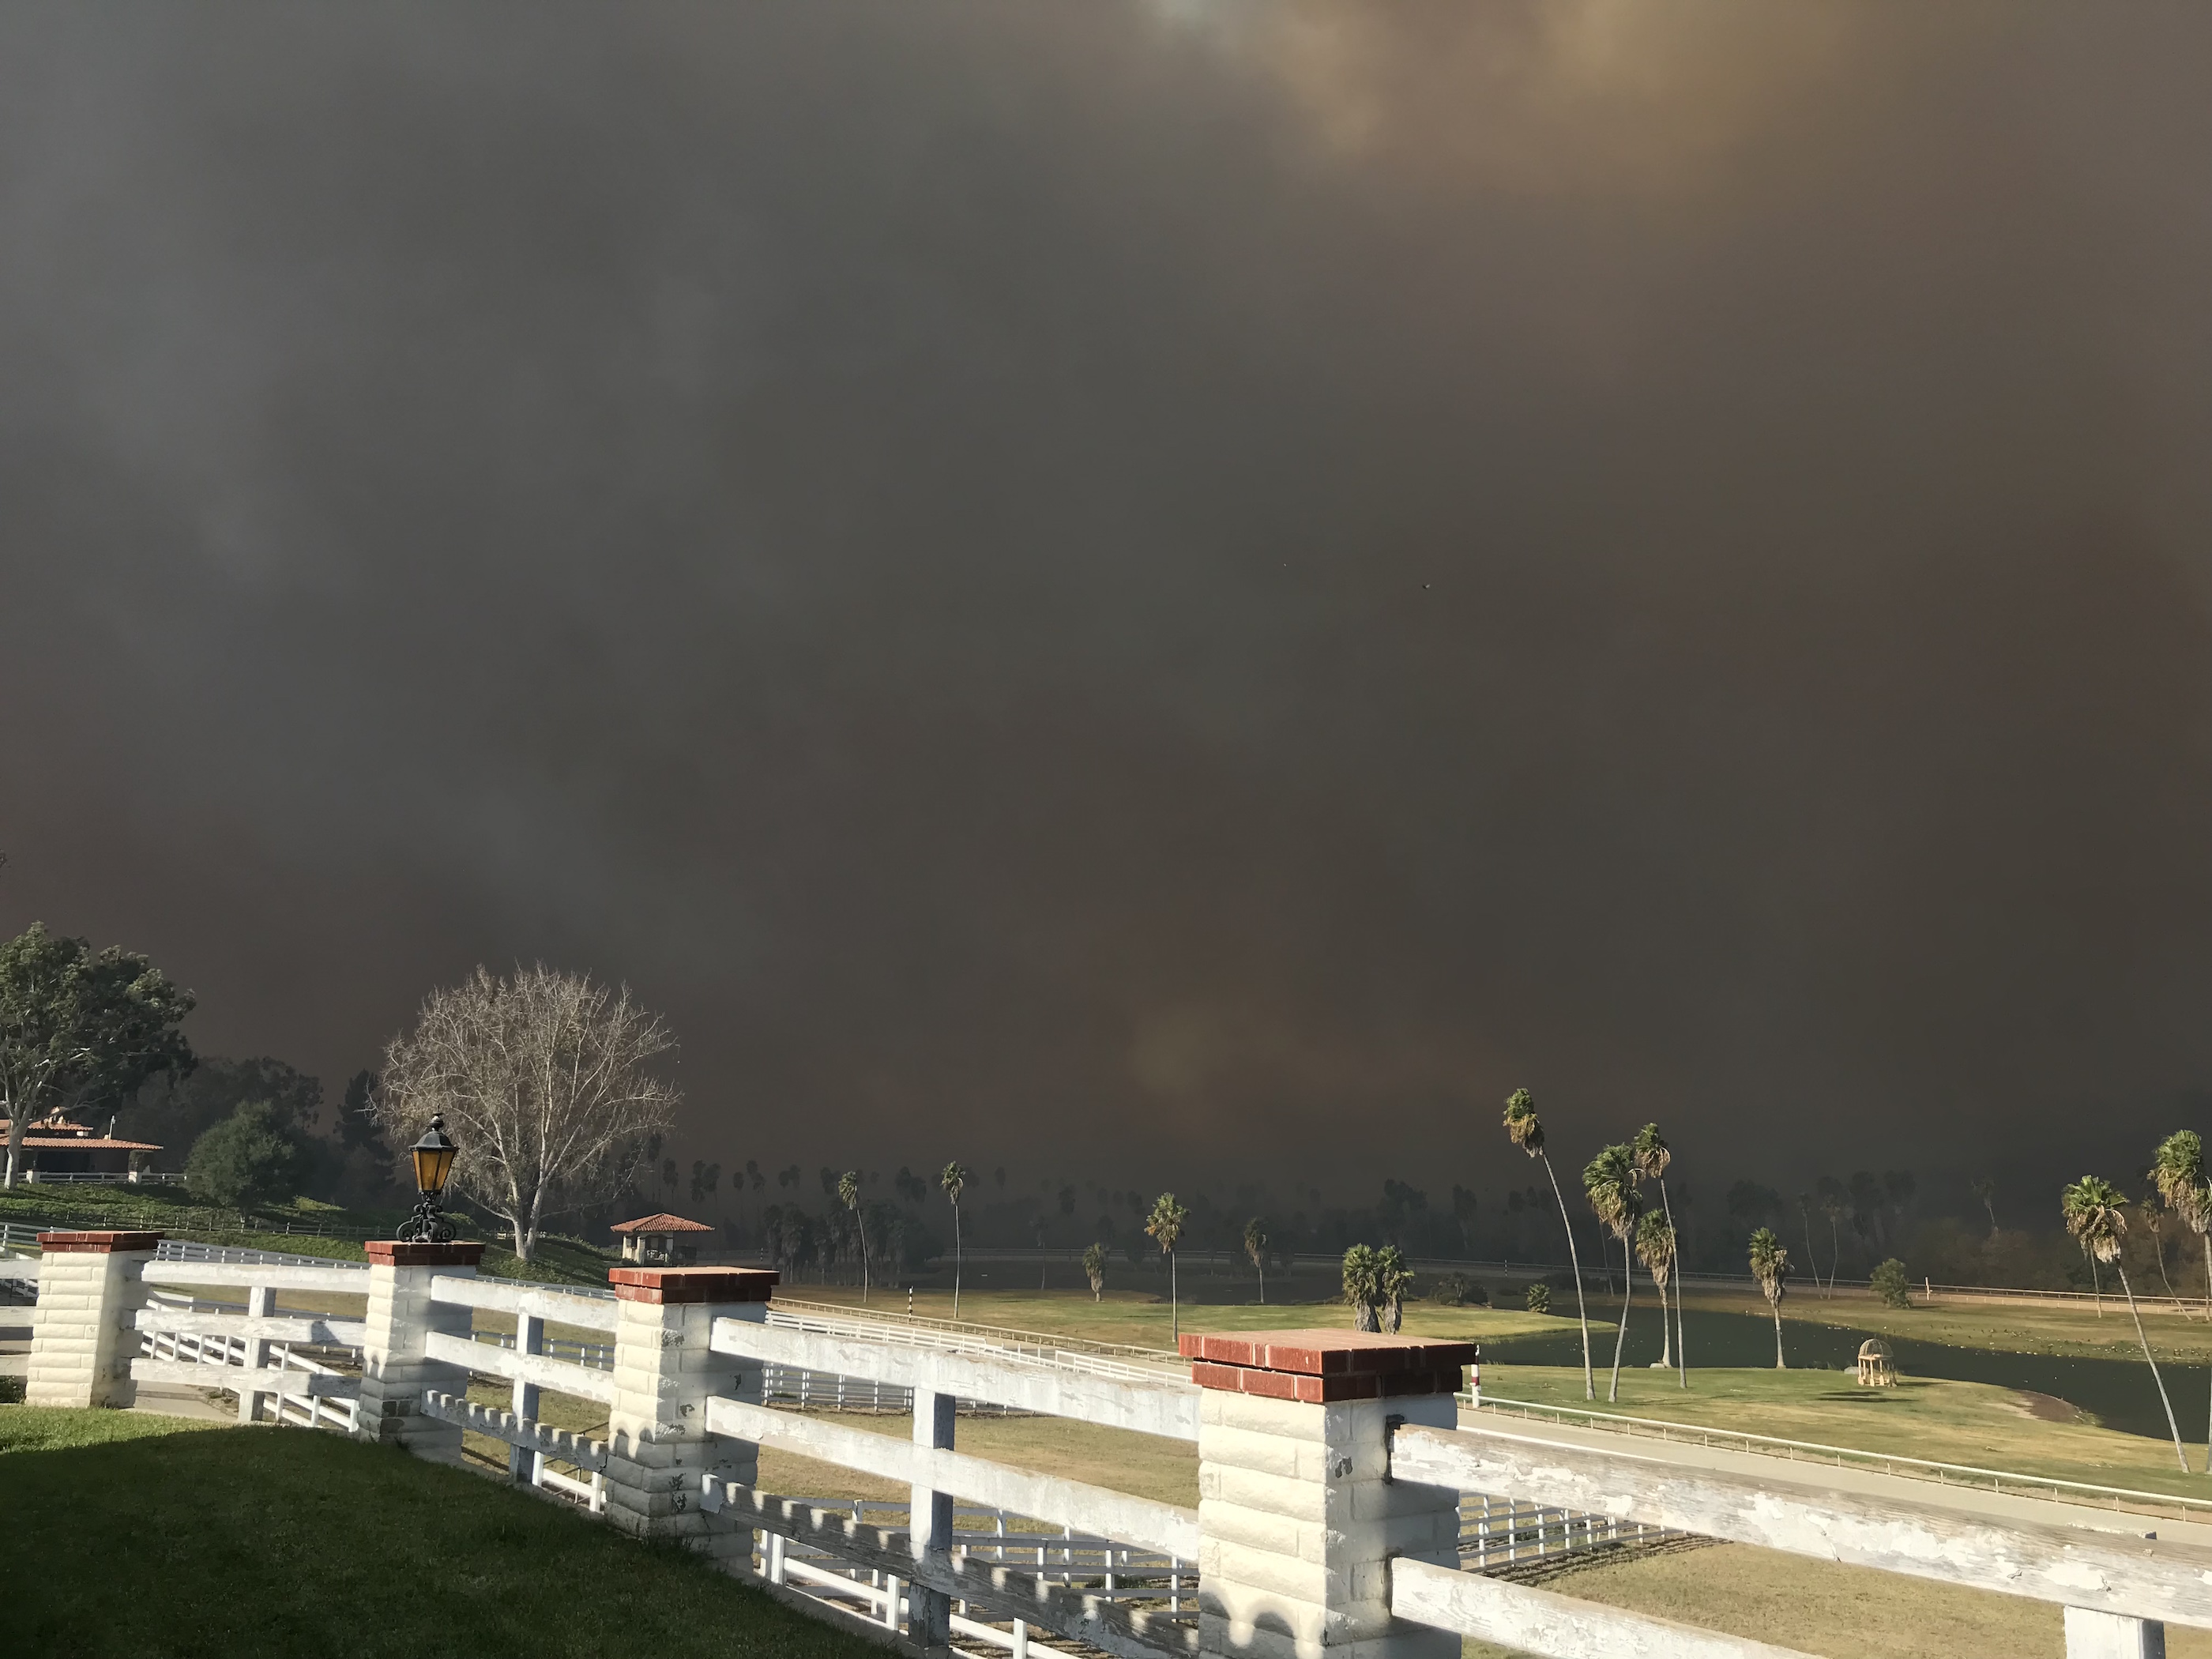 Doom-laden skies: the view from the Trifecta Equine Athletic Center, where about 70 horses were taken in from nearby San Luis Rey Downs